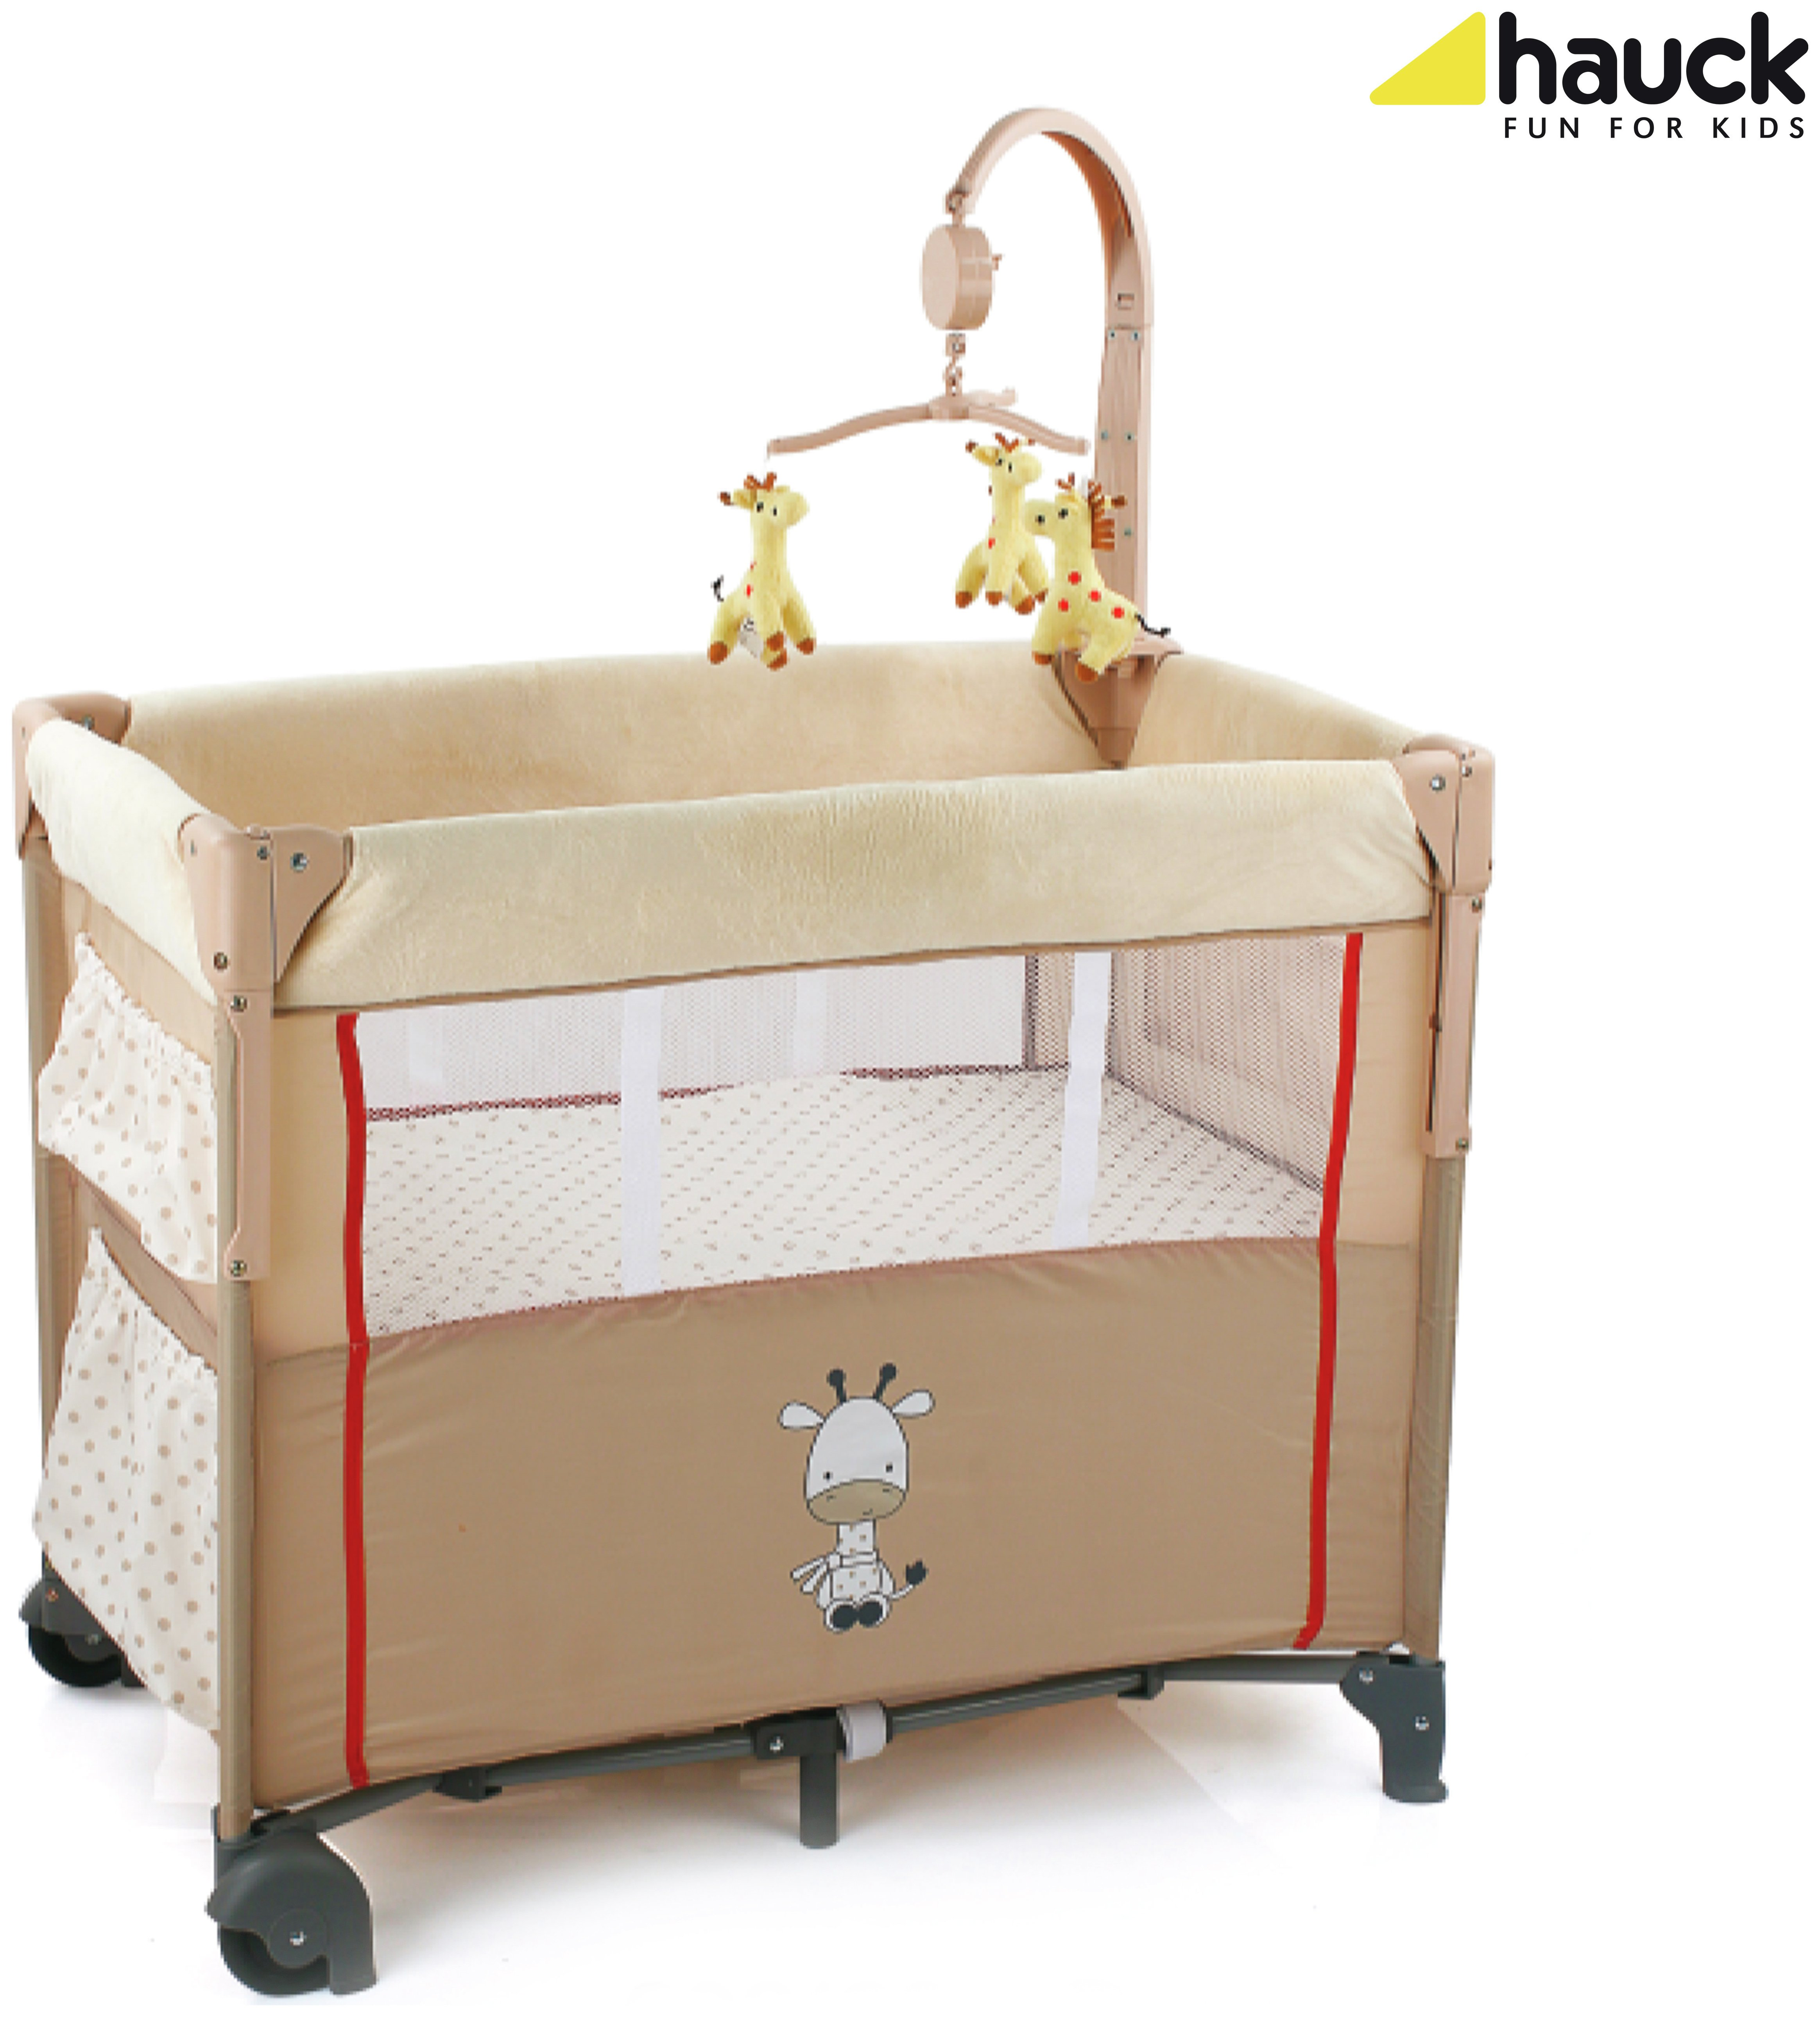 Image of Hauck Dream 'n' Care Centre Travel Cot Giraffe.